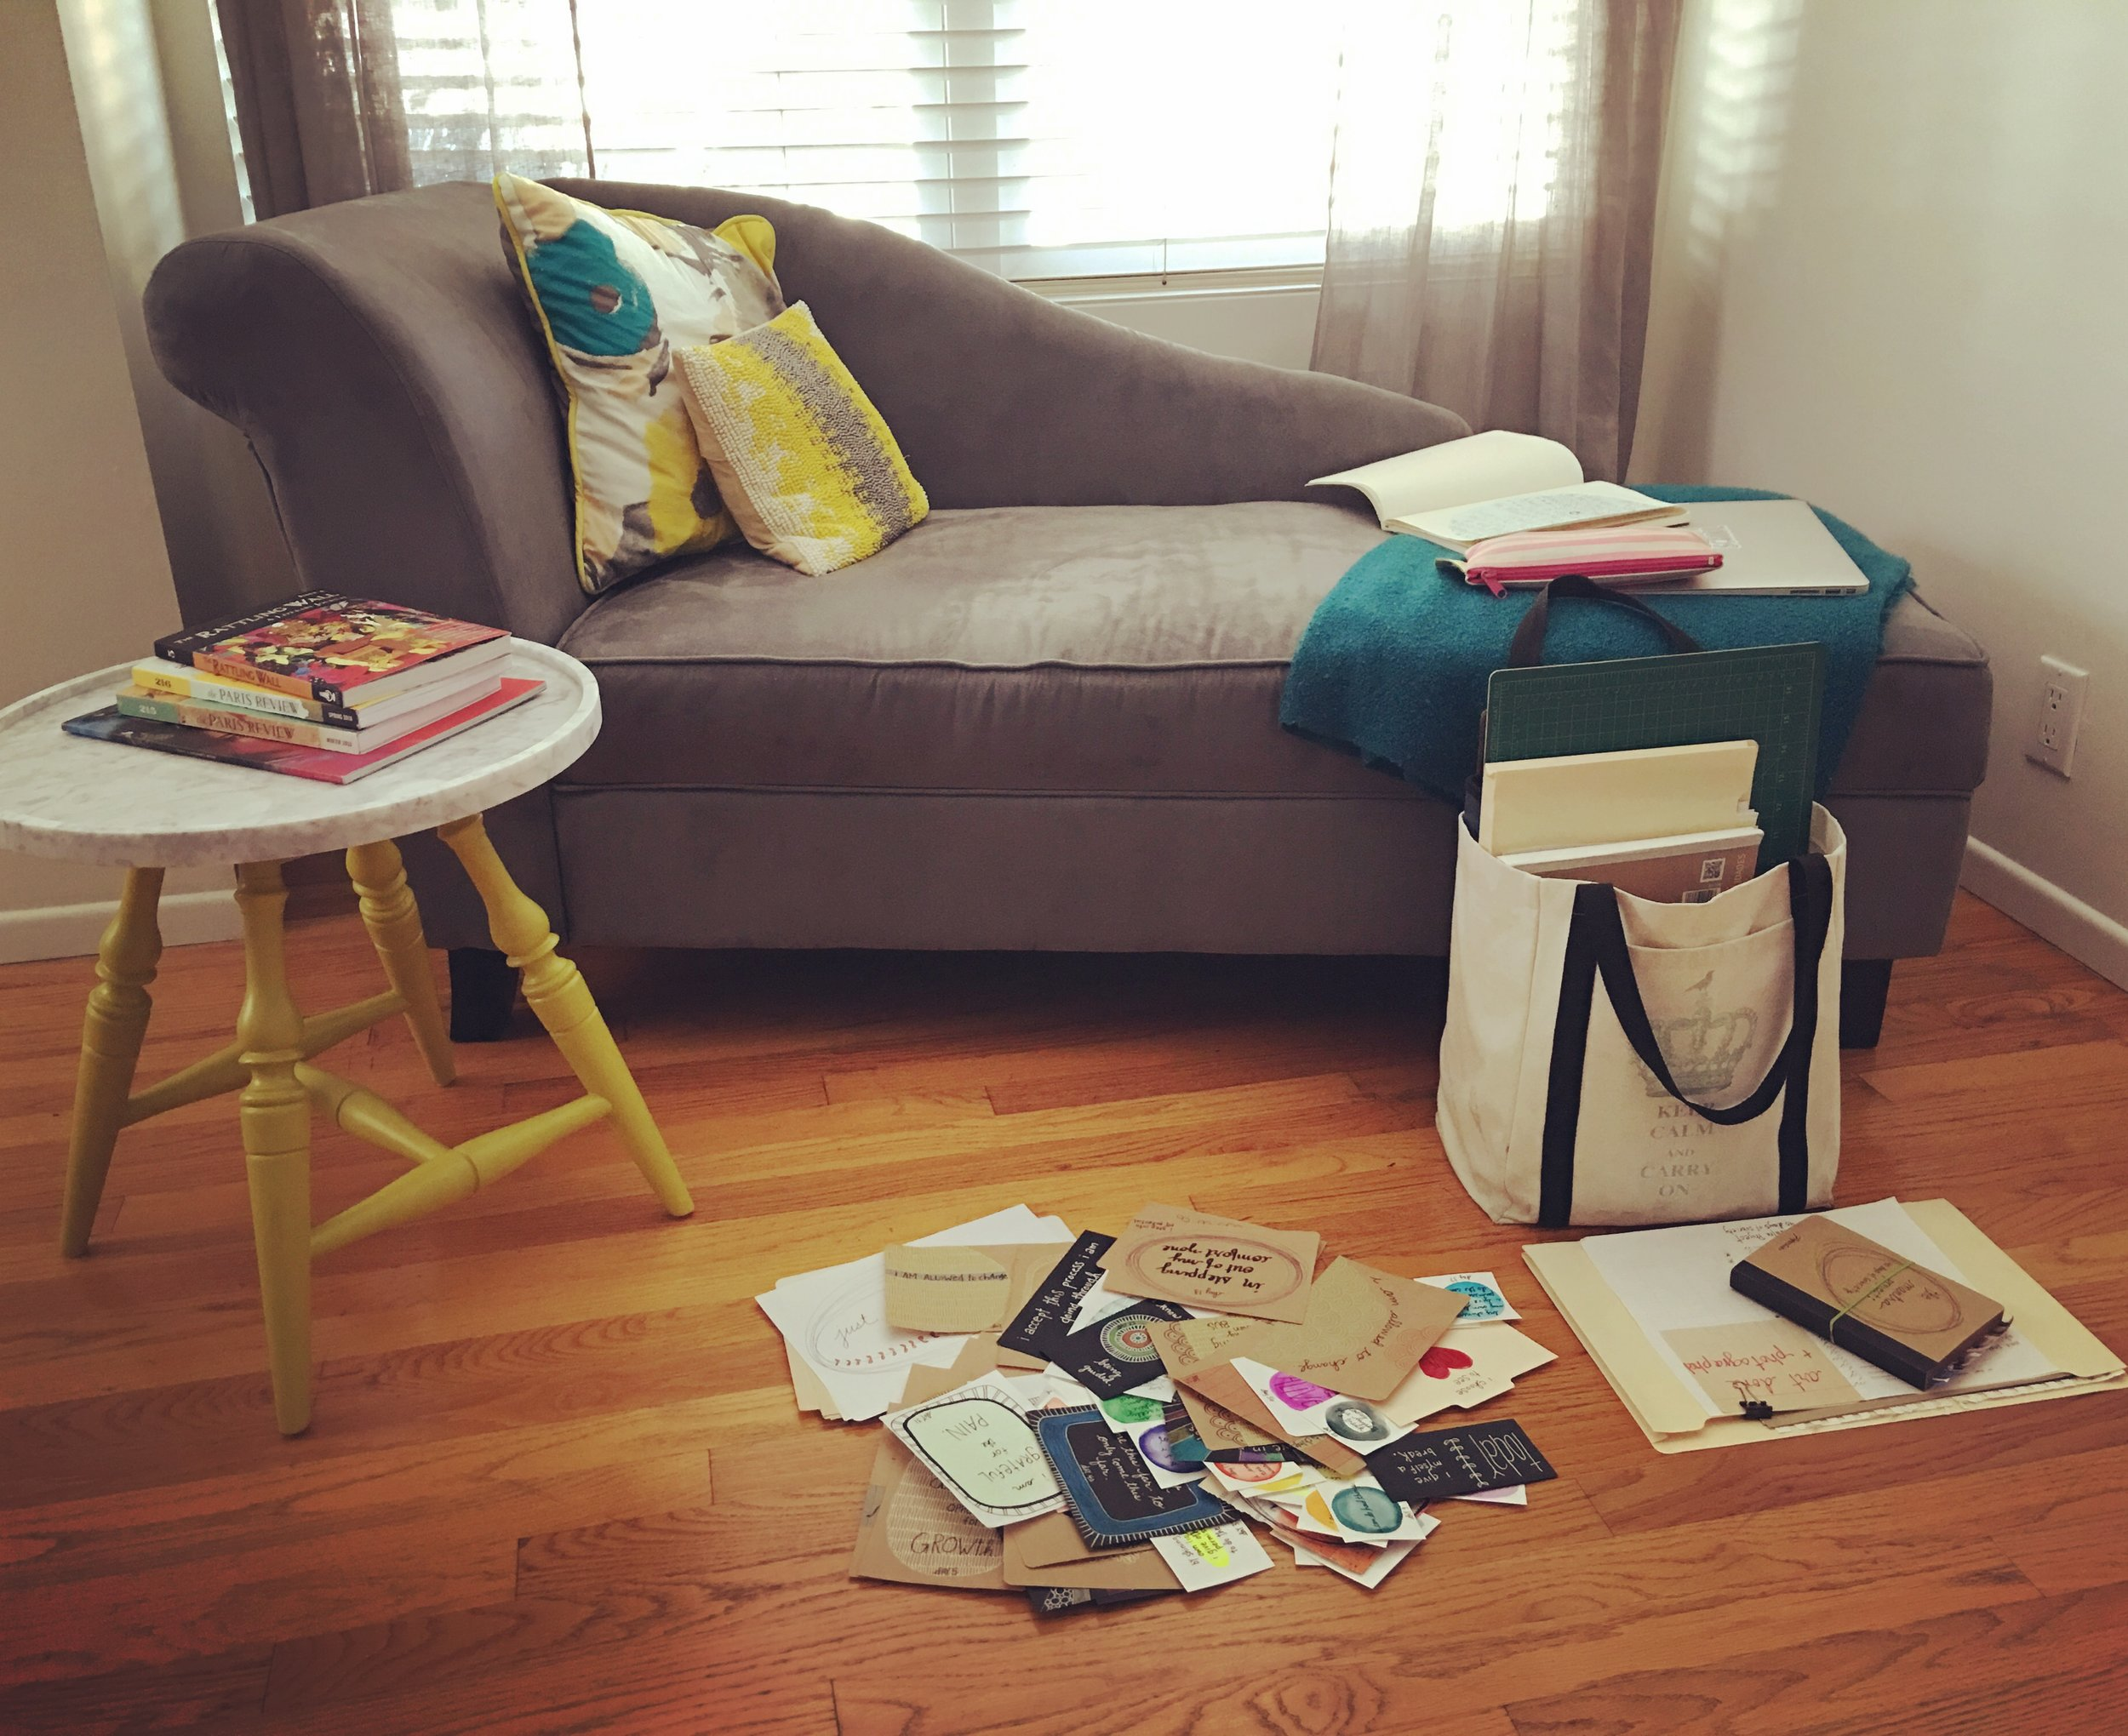 My corner at Katie's house. Her fainting chair? The best, right? My makeshift office + happy place.